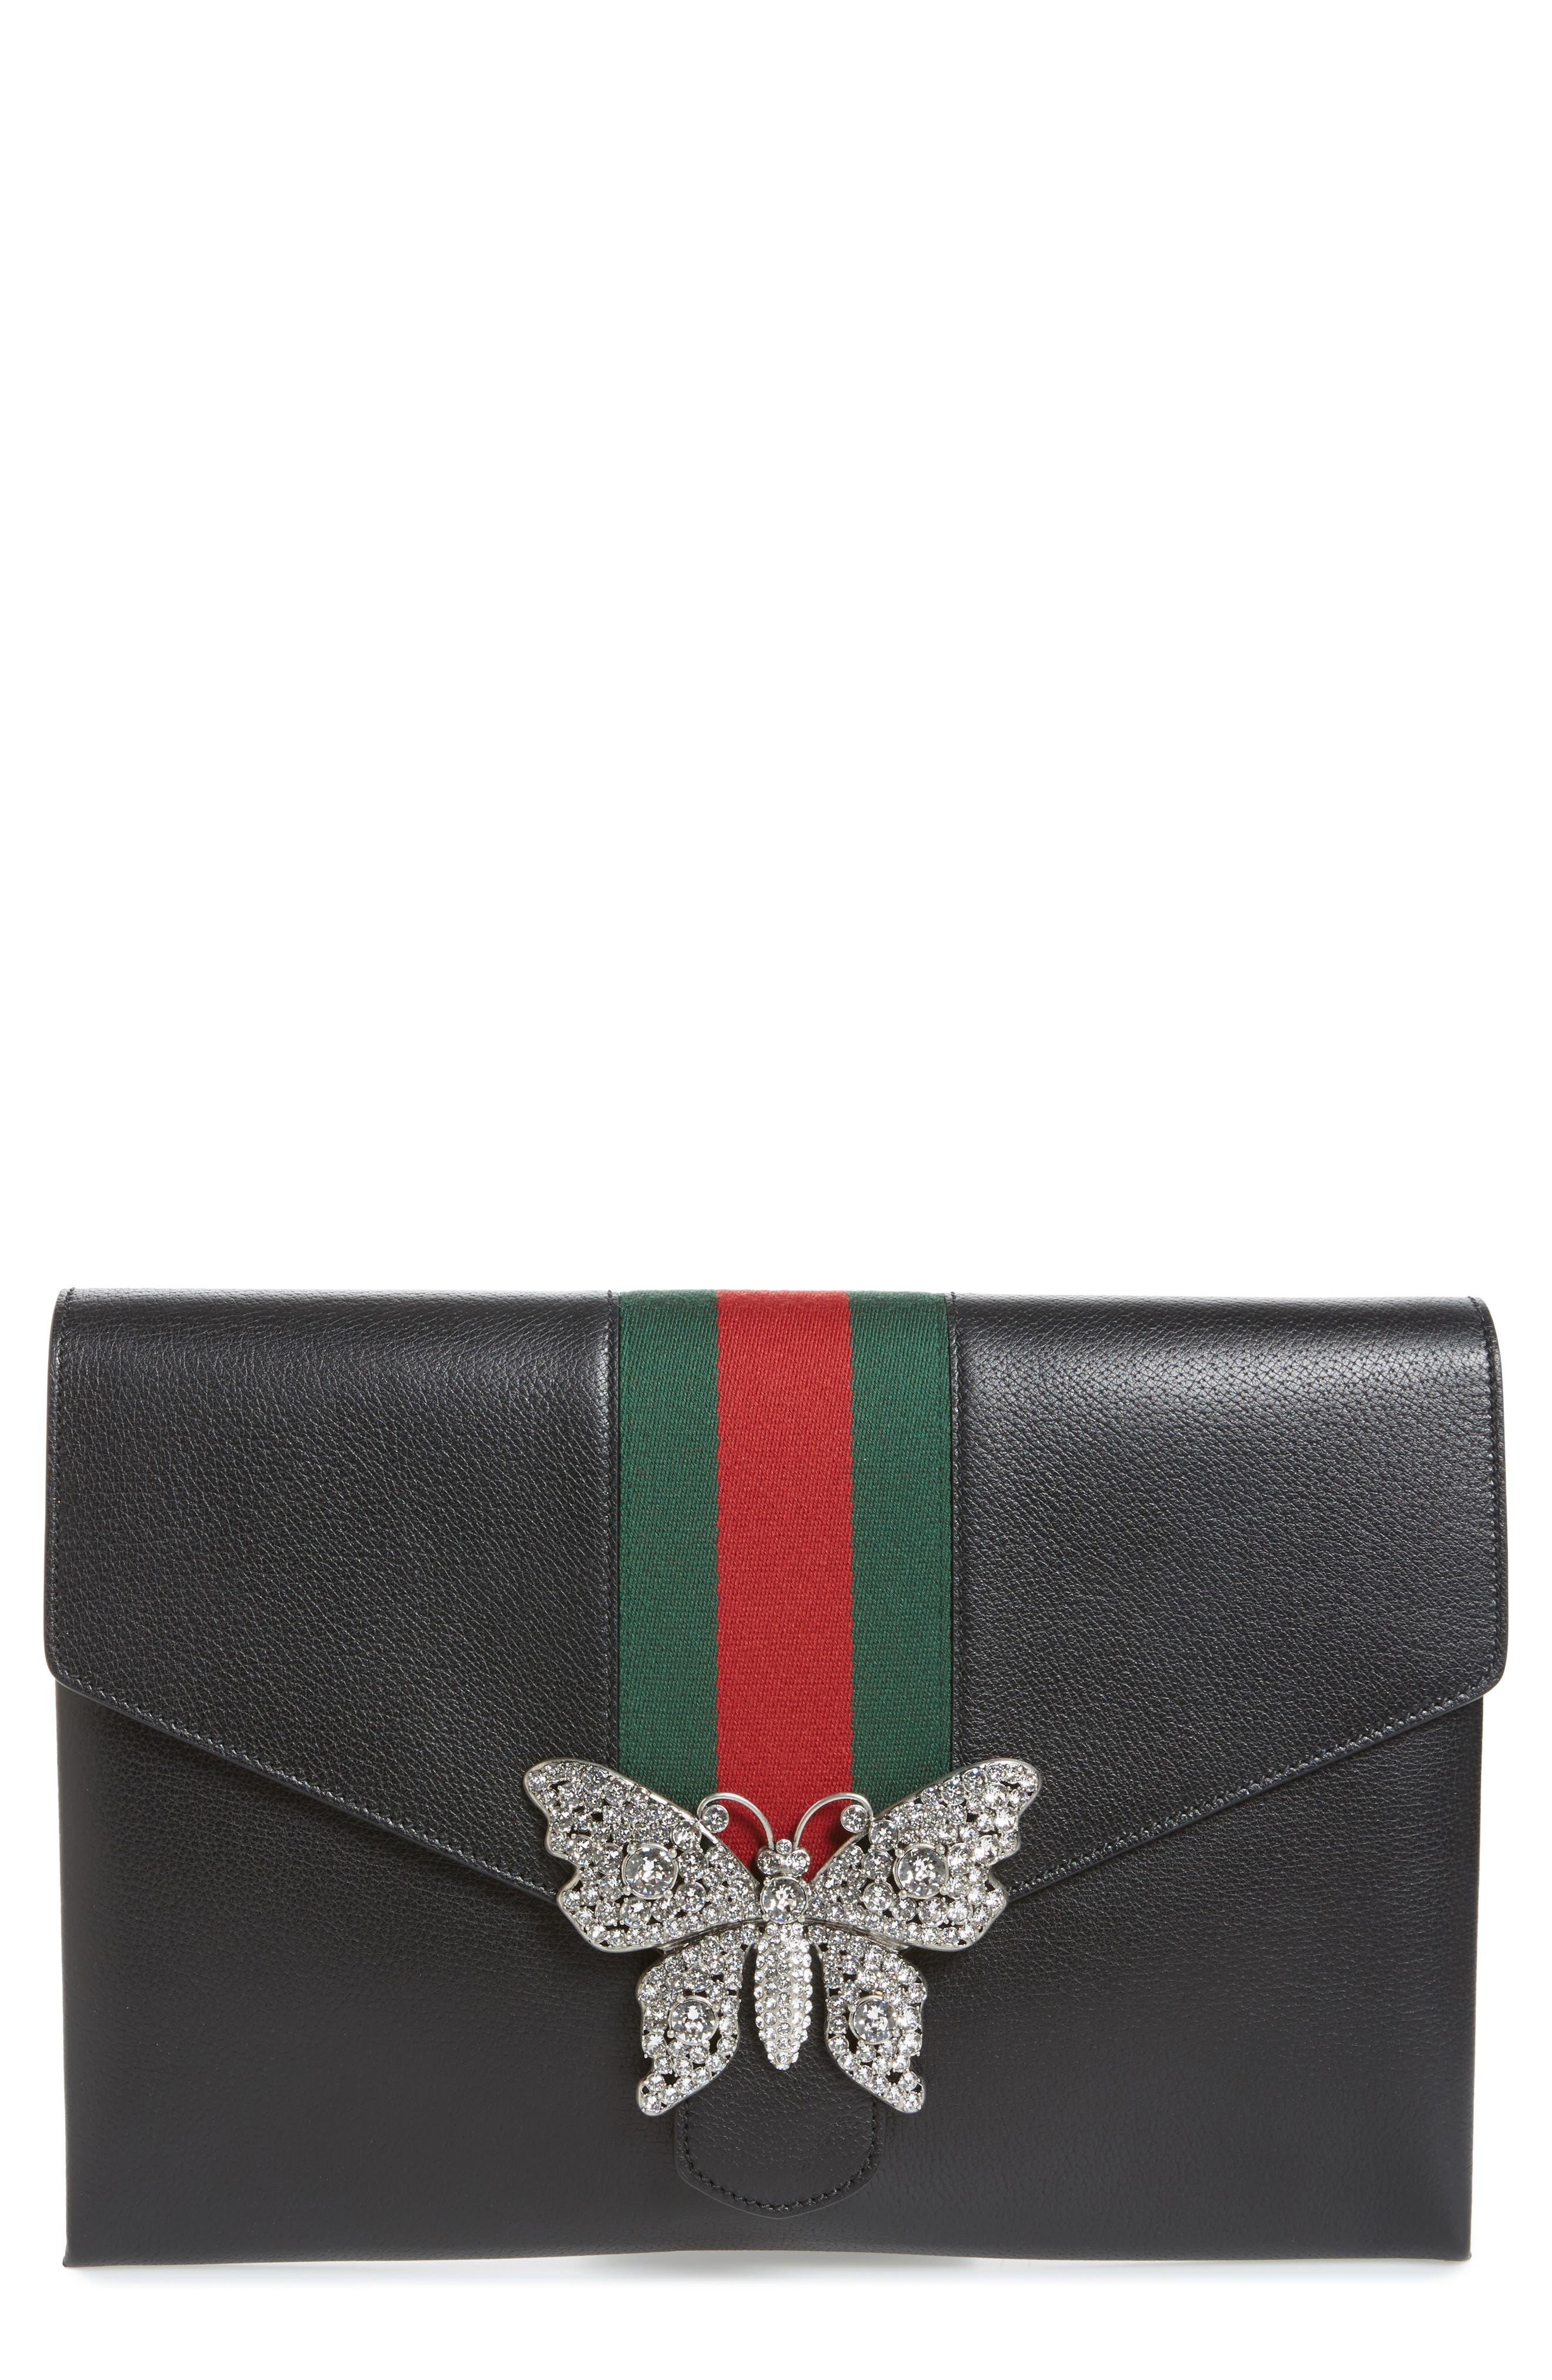 Totem Crystal Embellished Butterfly Leather Clutch,                             Main thumbnail 1, color,